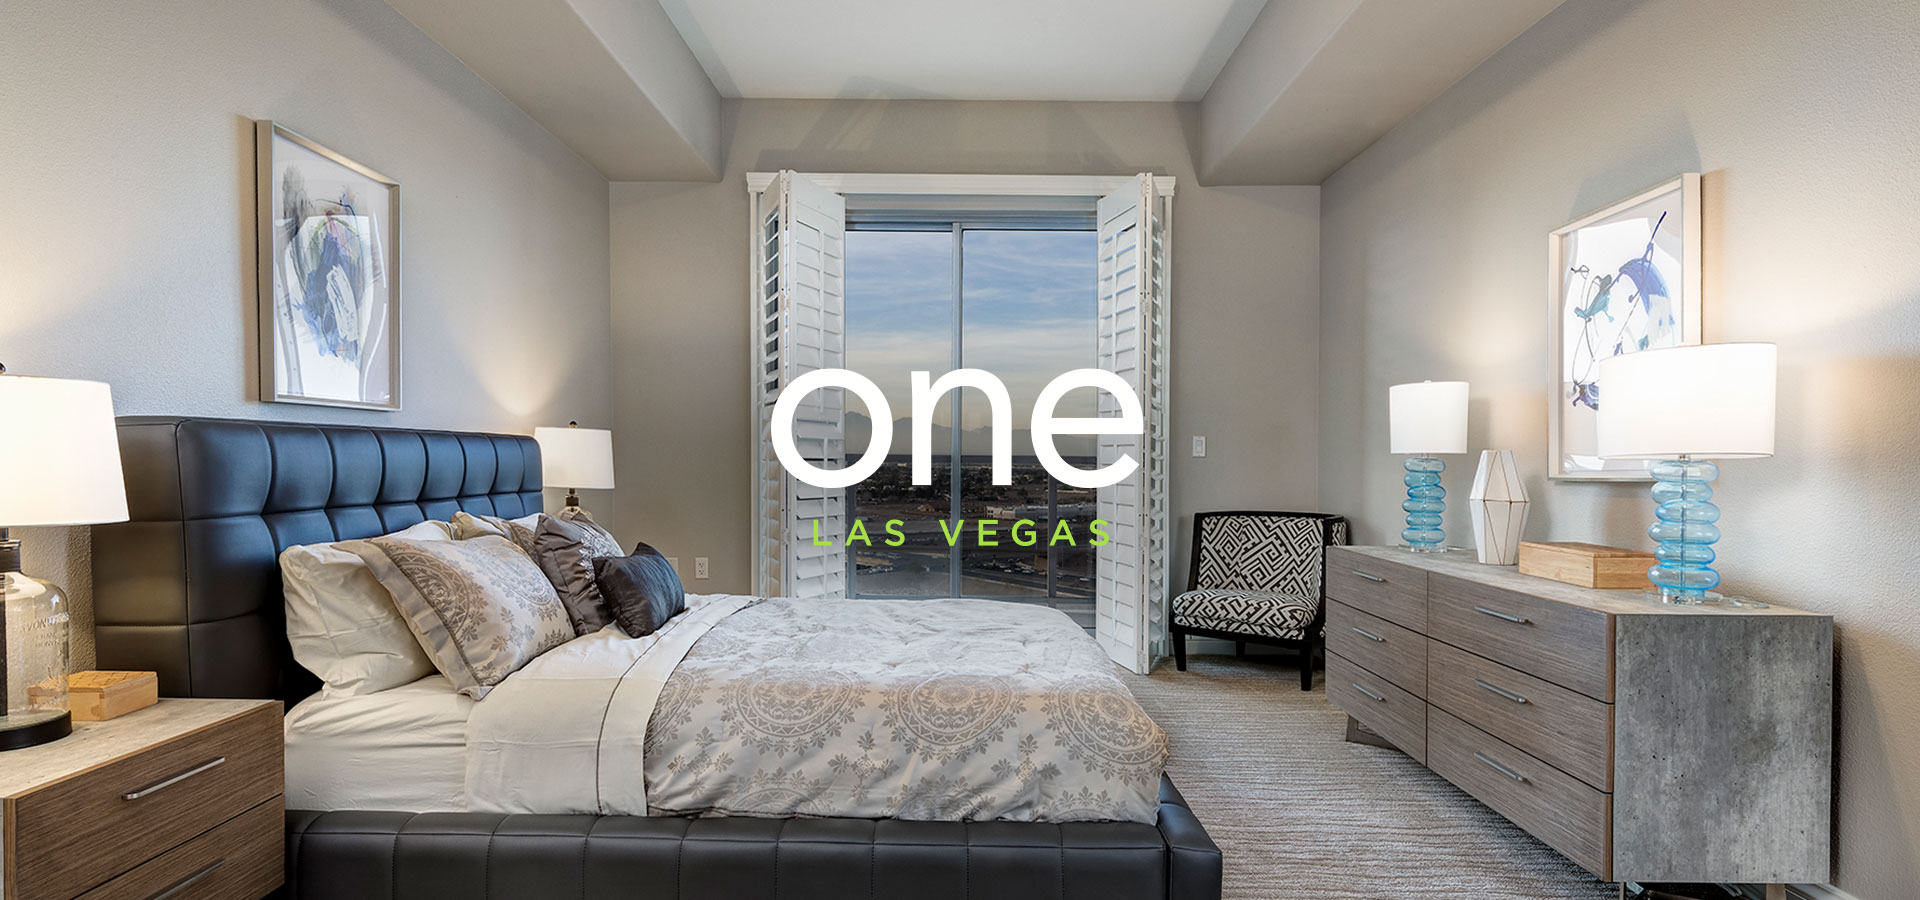 Bedroom in one of the model homes at One Las Vegas with text that reads 'One Las Vegas'